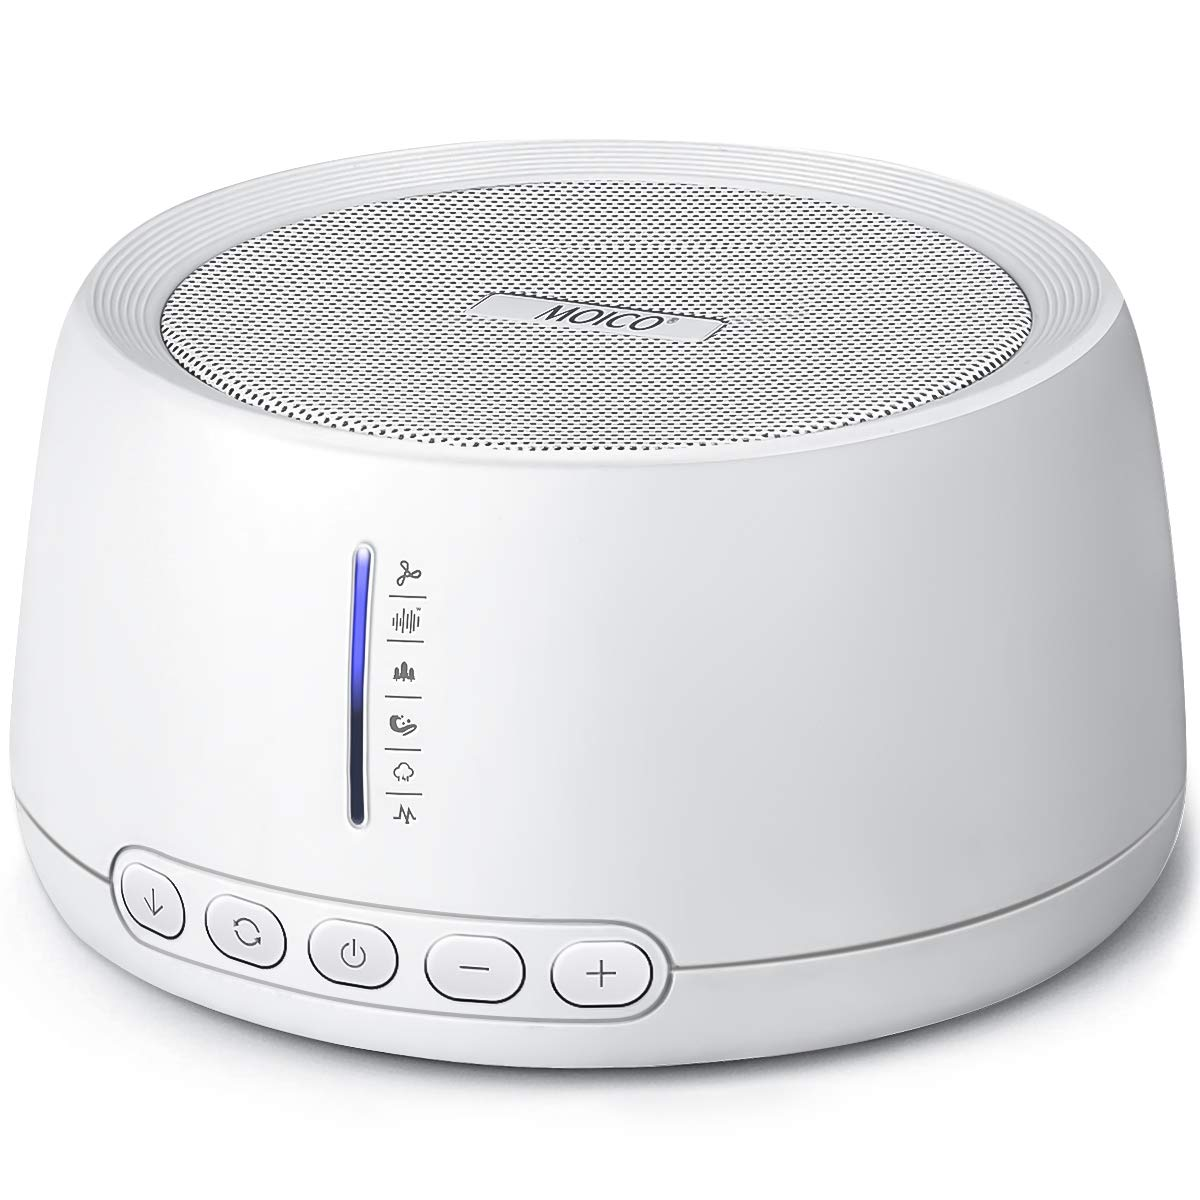 White Noise Machine - MOICO Sleep Sound Machines for Baby Adults, 30 Natural Sounds, 35 Volume Settings, Timer & Memory Function, USB Cable/Plug Included, Great for Home Travel Office Privacy (White)